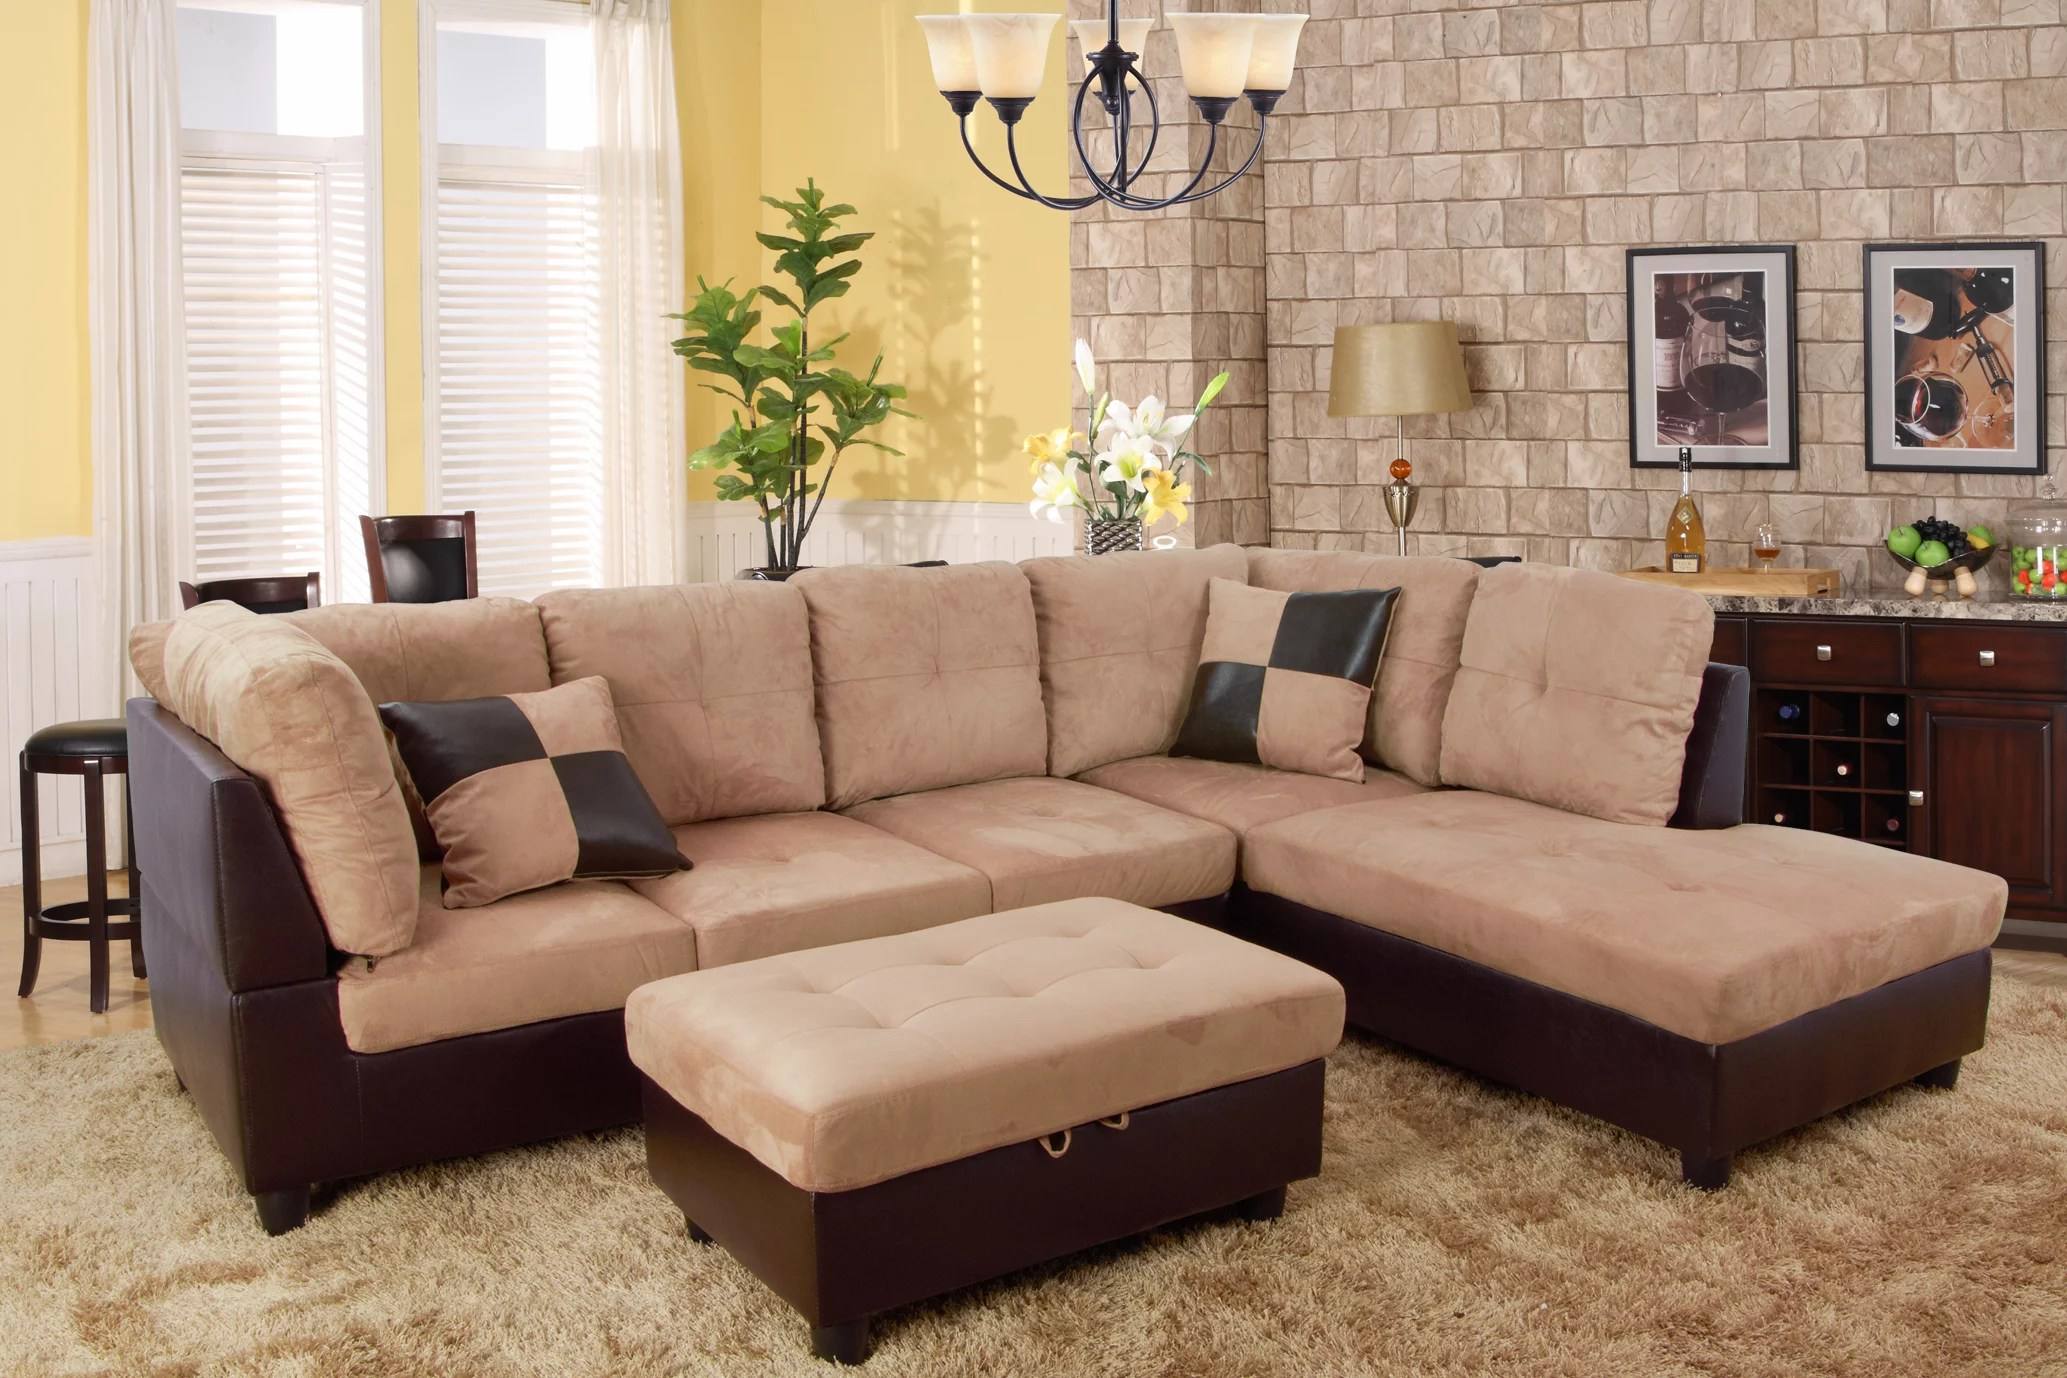 for u furnishing charming beige microfiber sectional sofa righe facing chaise 74 5 d x 103 5 w x 35 h